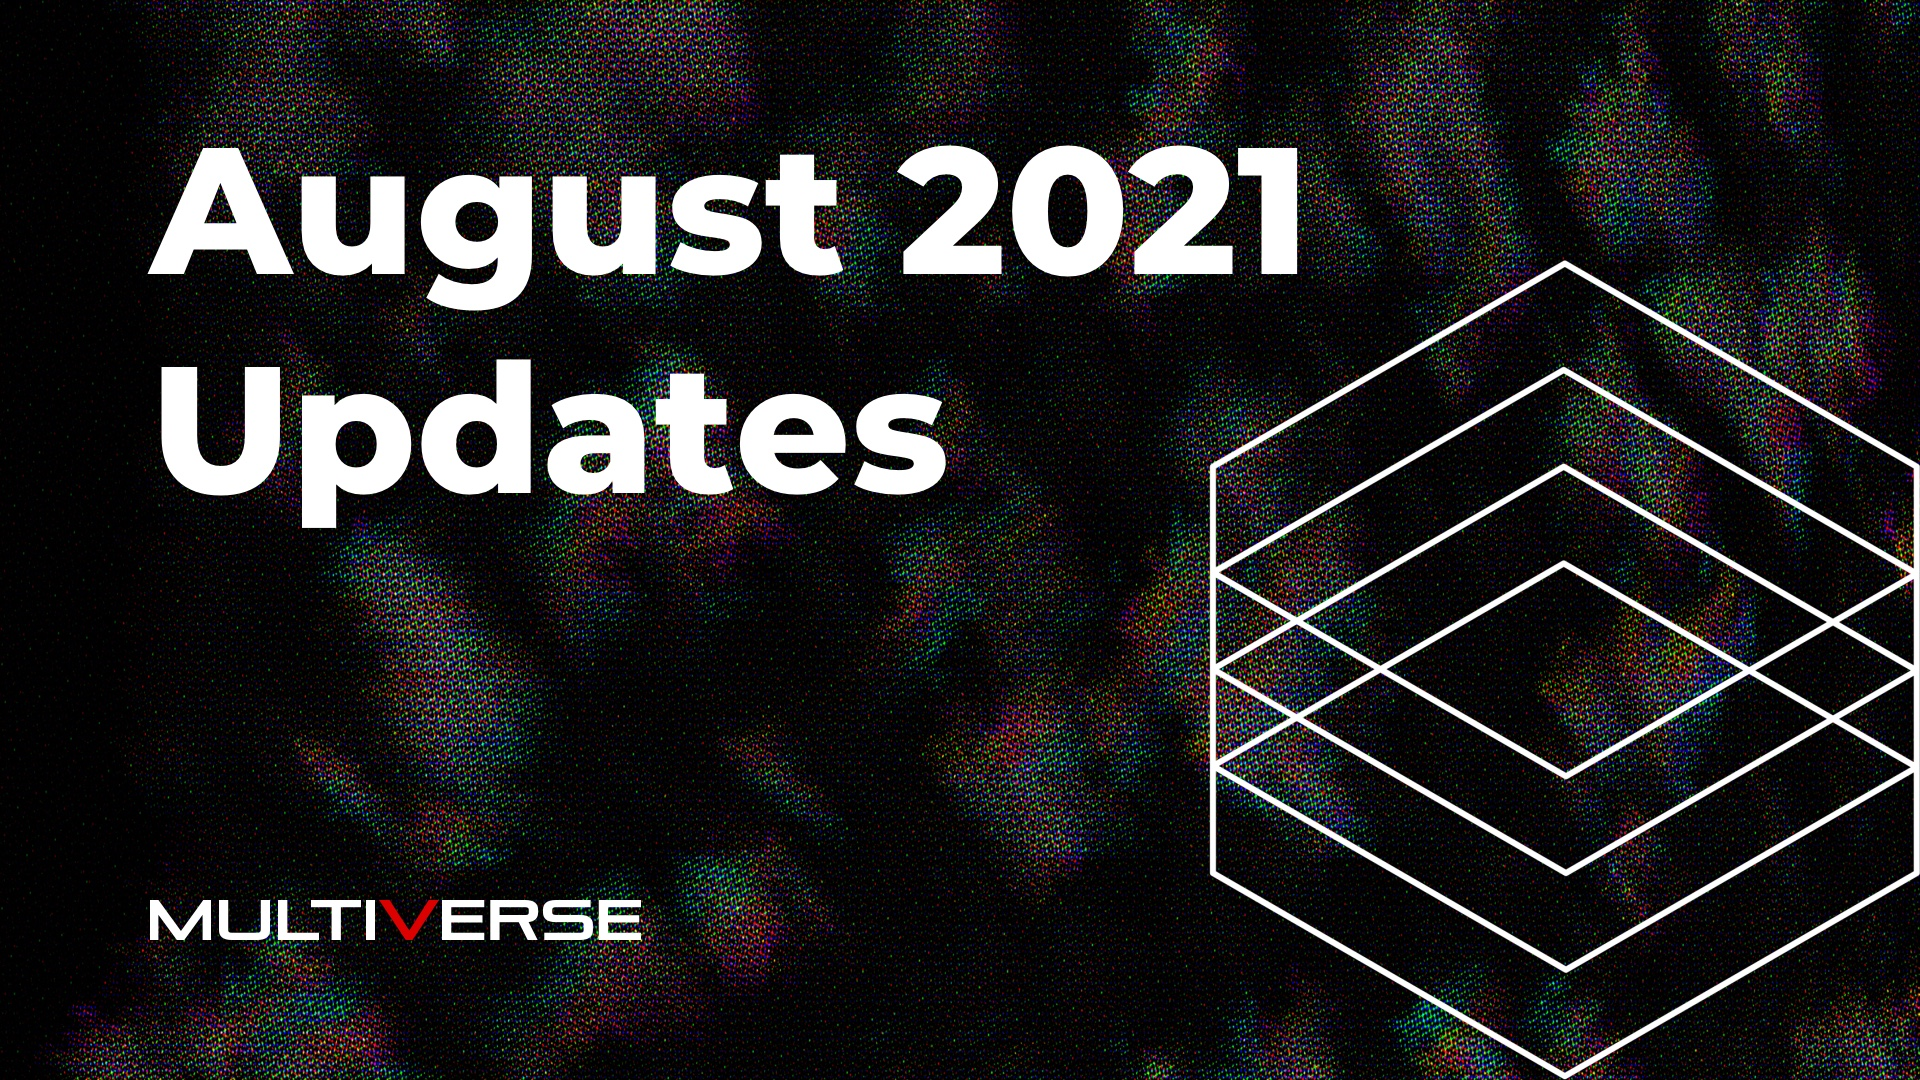 Article banner for Multiverse Labs August Updates 2021 with black background and MultiverseAI logo